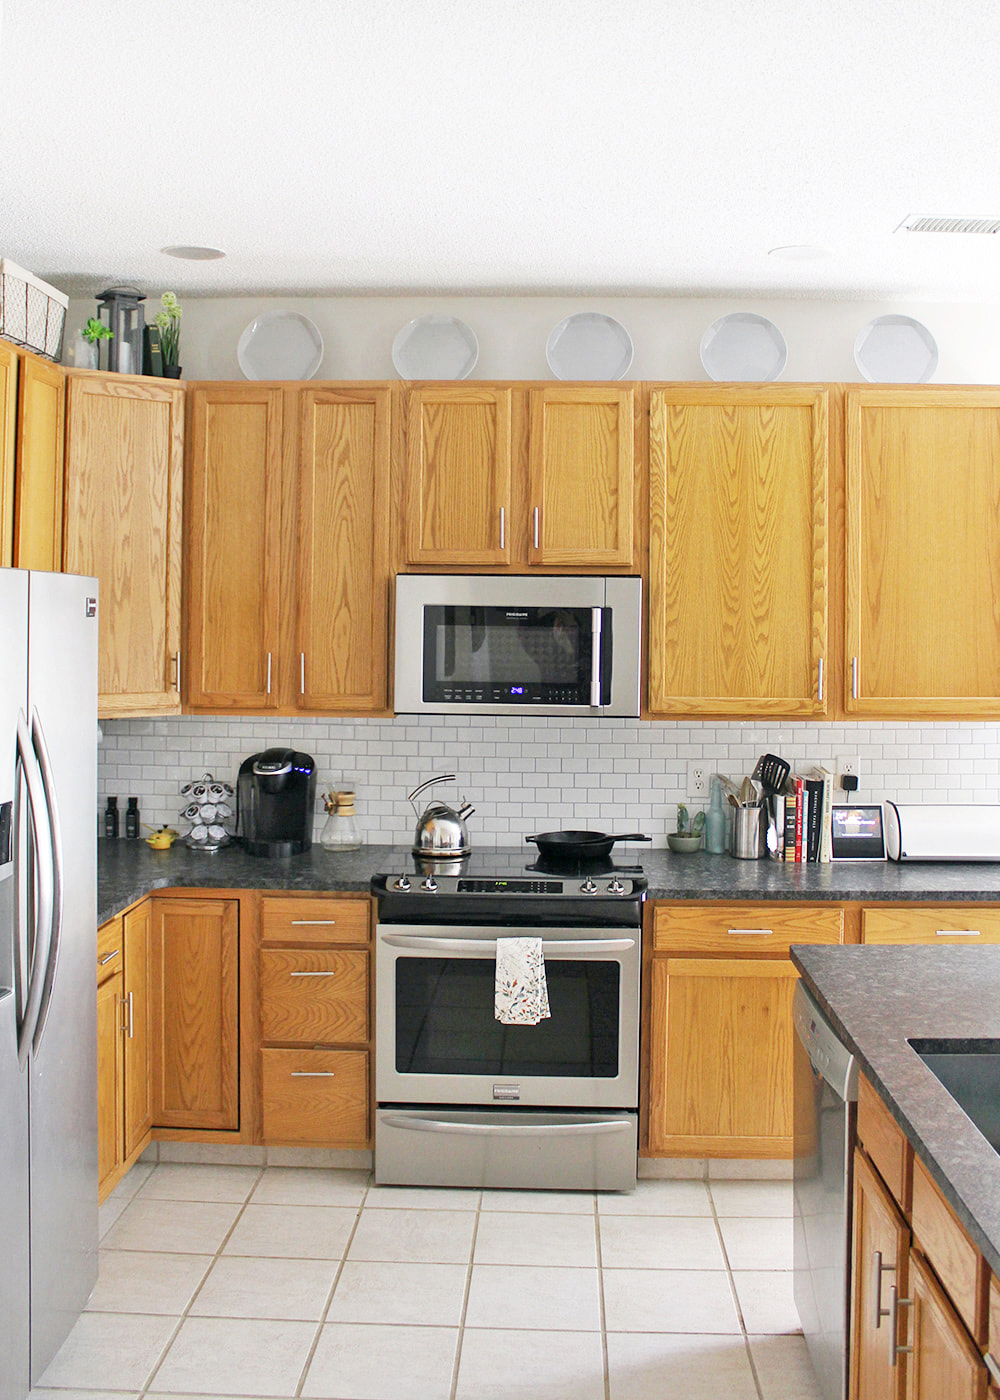 Decorating Over Kitchen Cabinets For Under 60 Tag Tibby Design